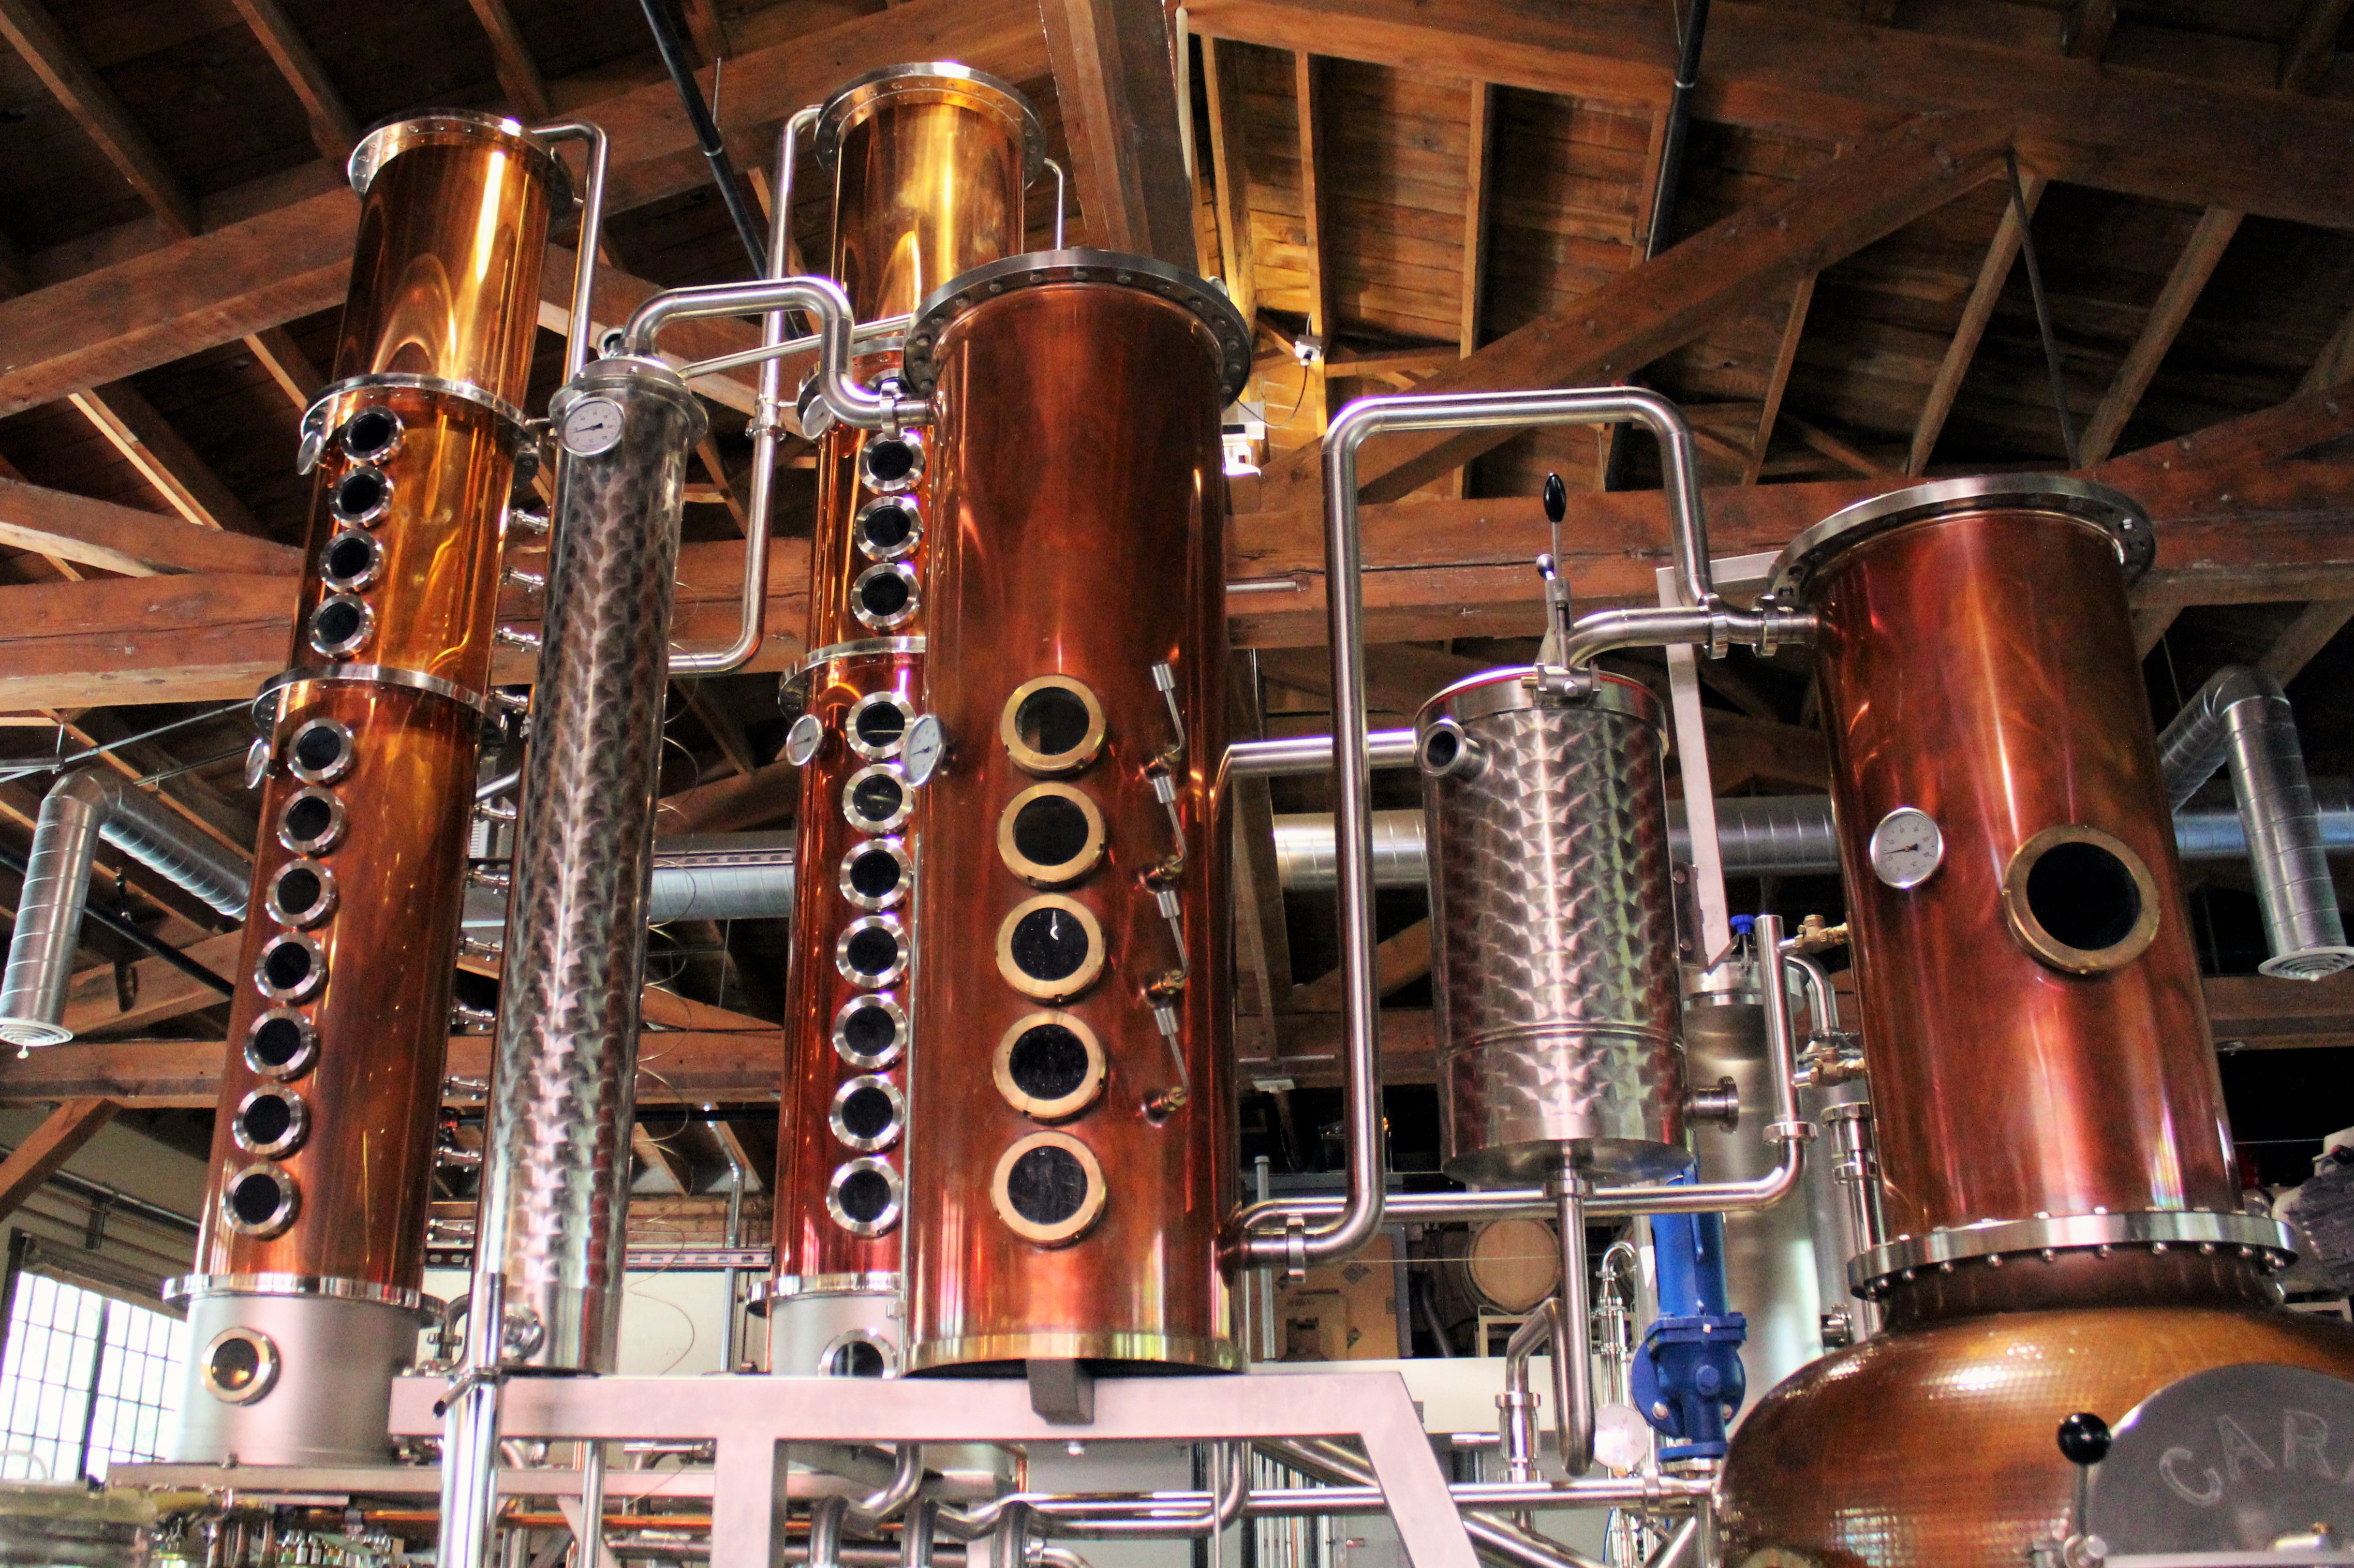 Copper Stills photo by Carrie Uffindell